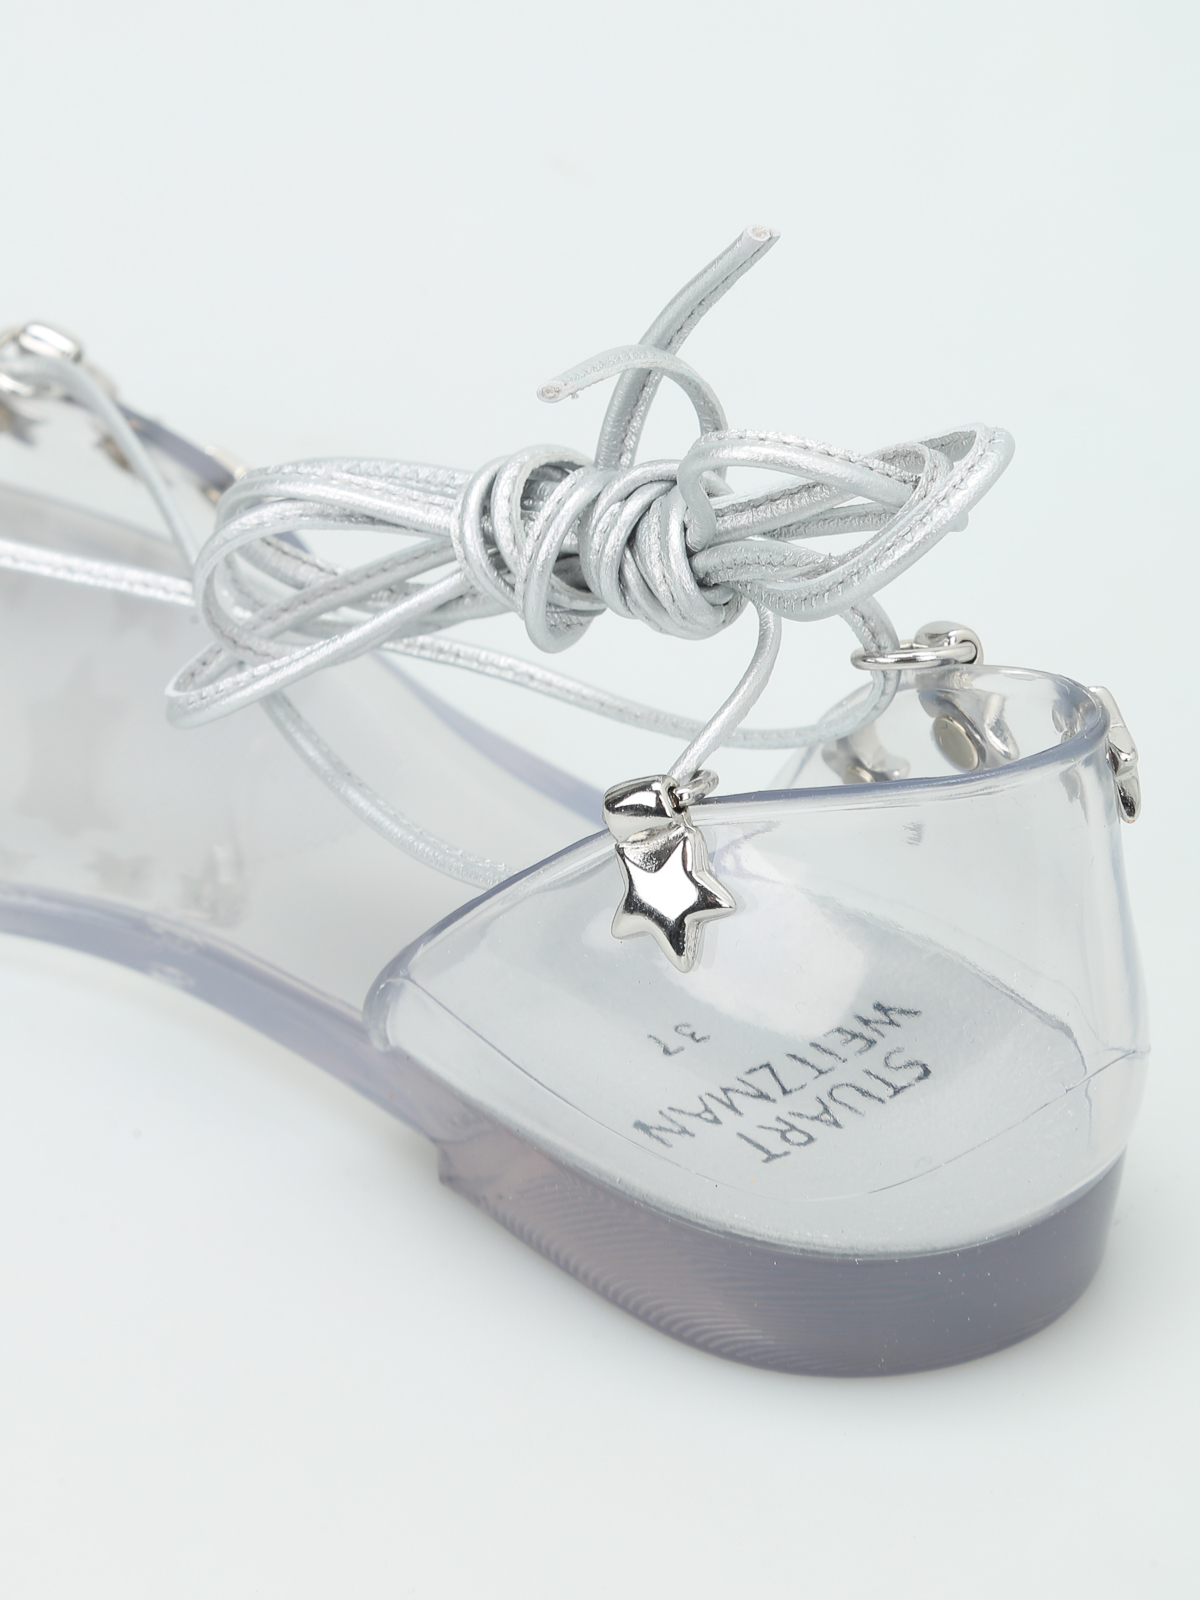 79f9951999f2 Stuart Weitzman - Glass Noodles Star jelly sandals - sandals - VL76241